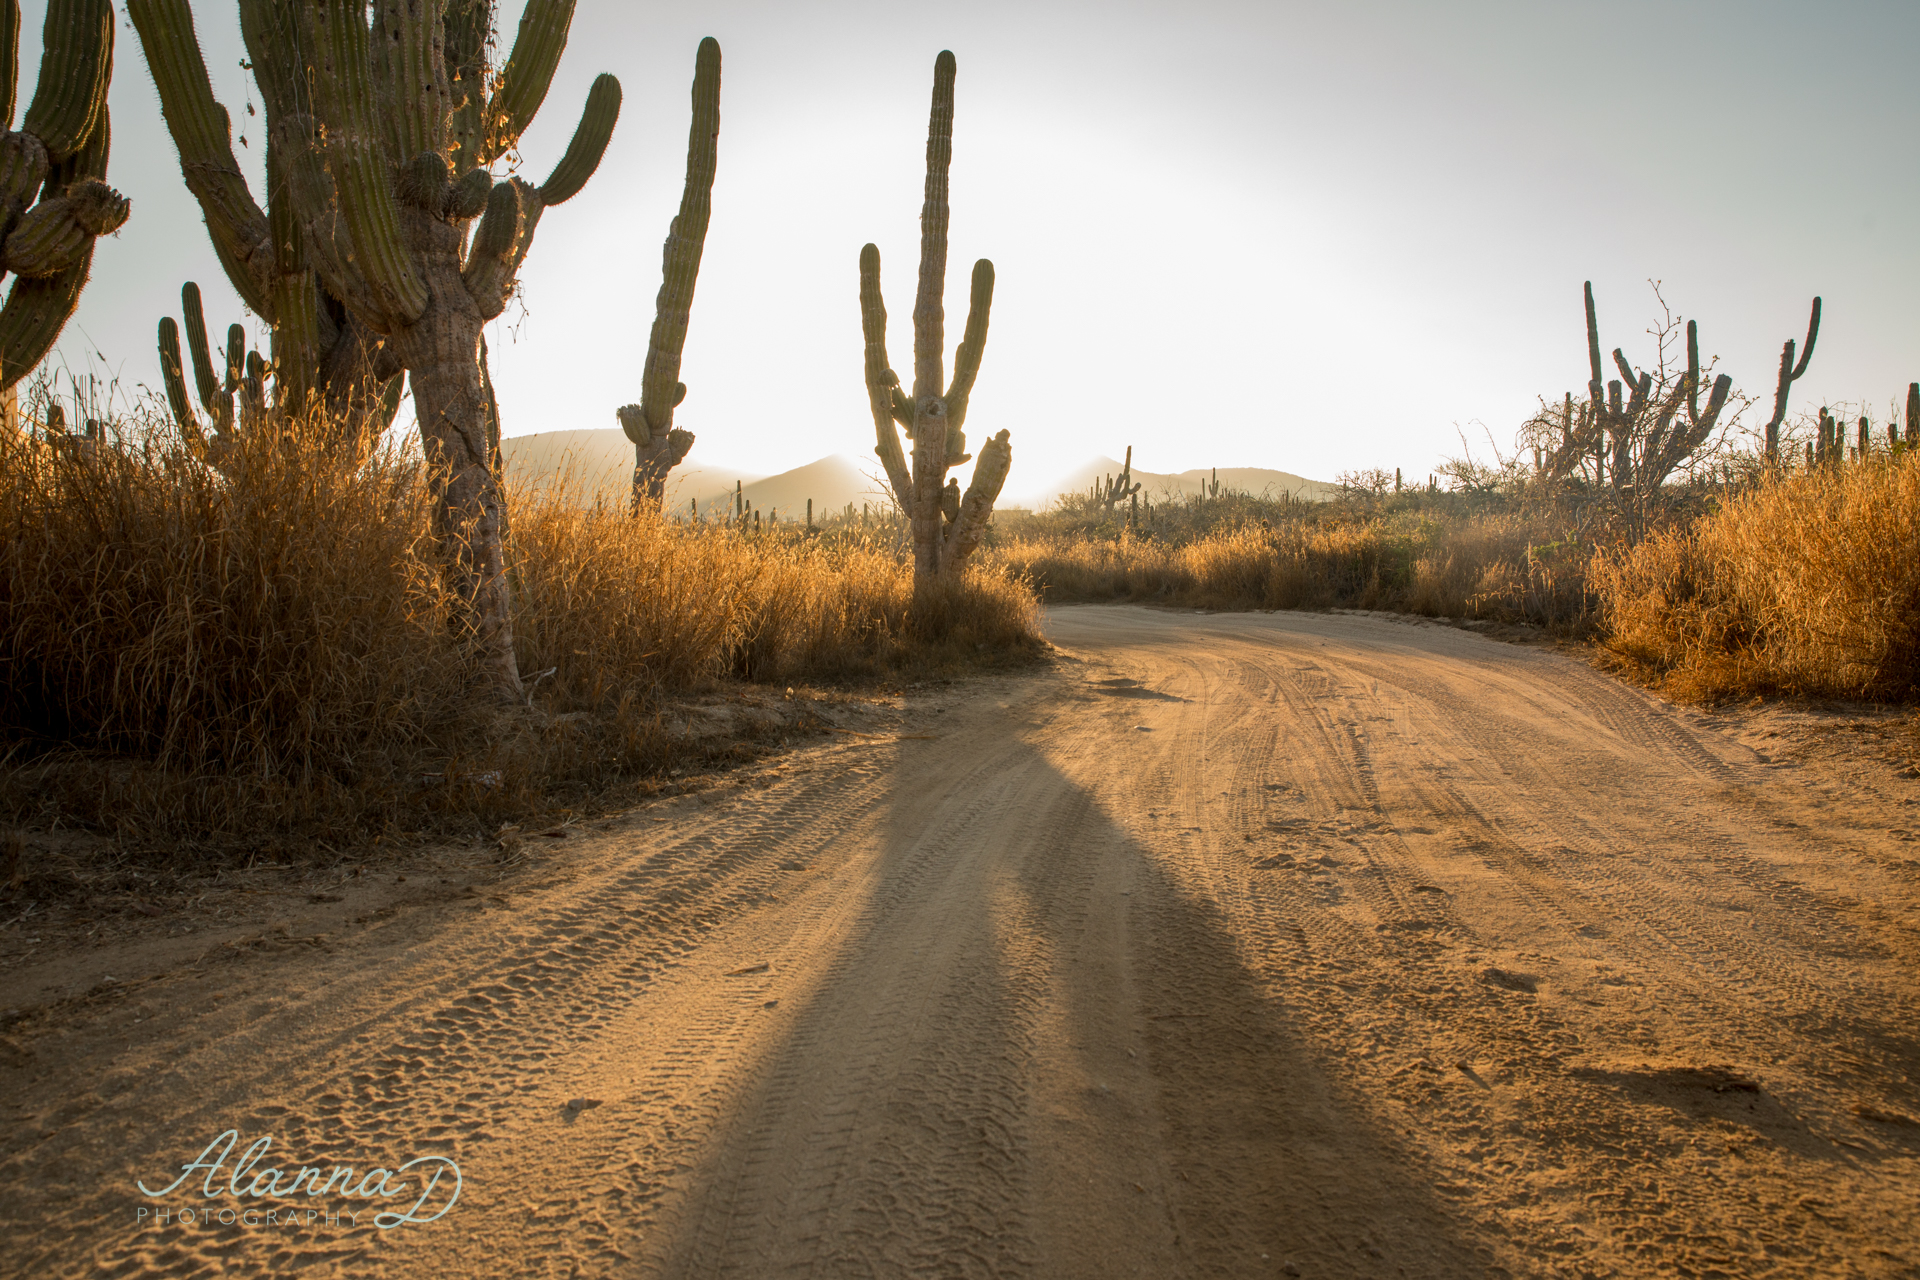 Off the Beaten Path Mexico - Alanna D Photography